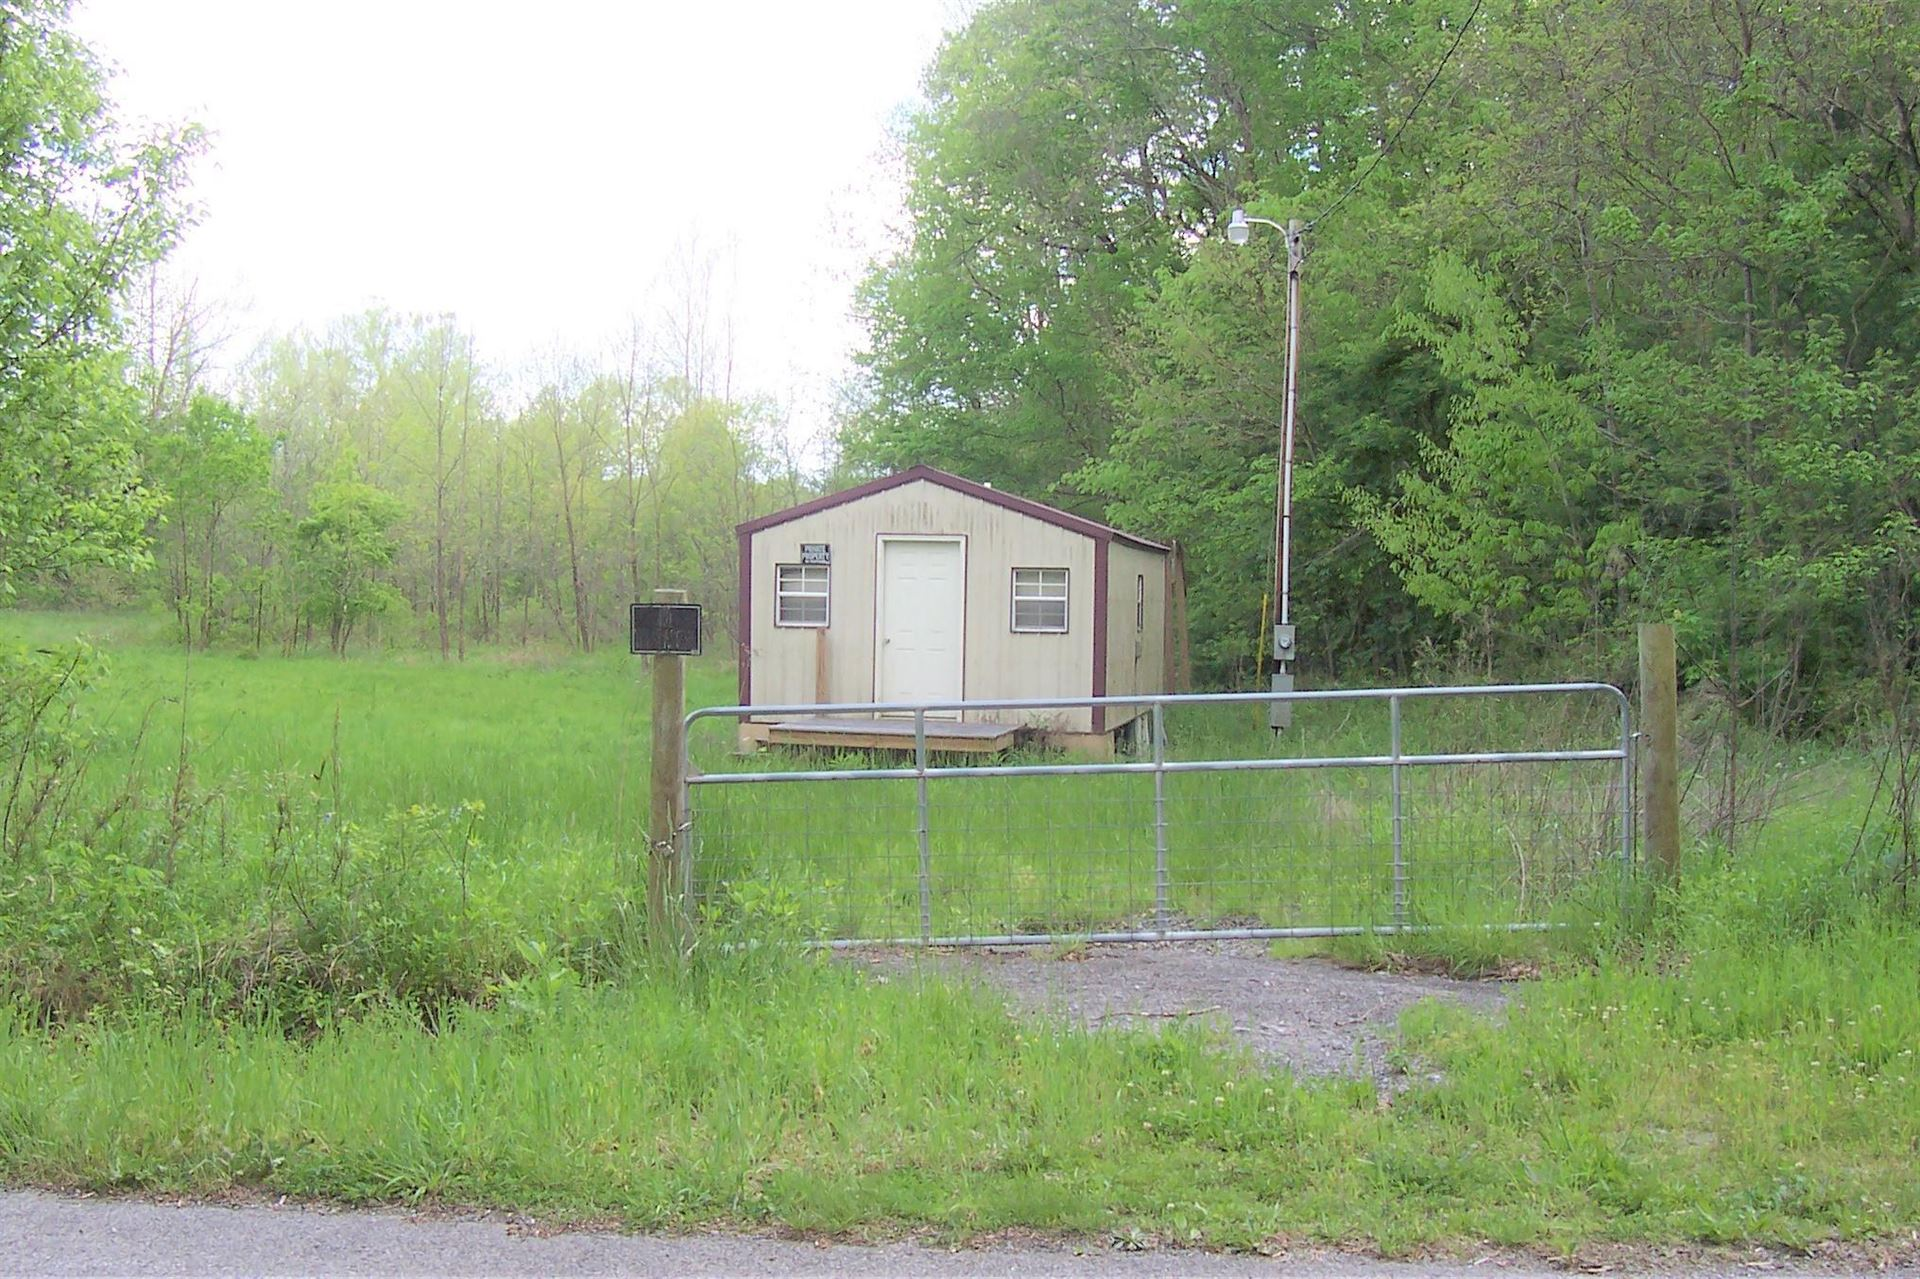 Photo of 2487 Watershed Rd, Caneyville, KY 42721 (MLS # 1584888)